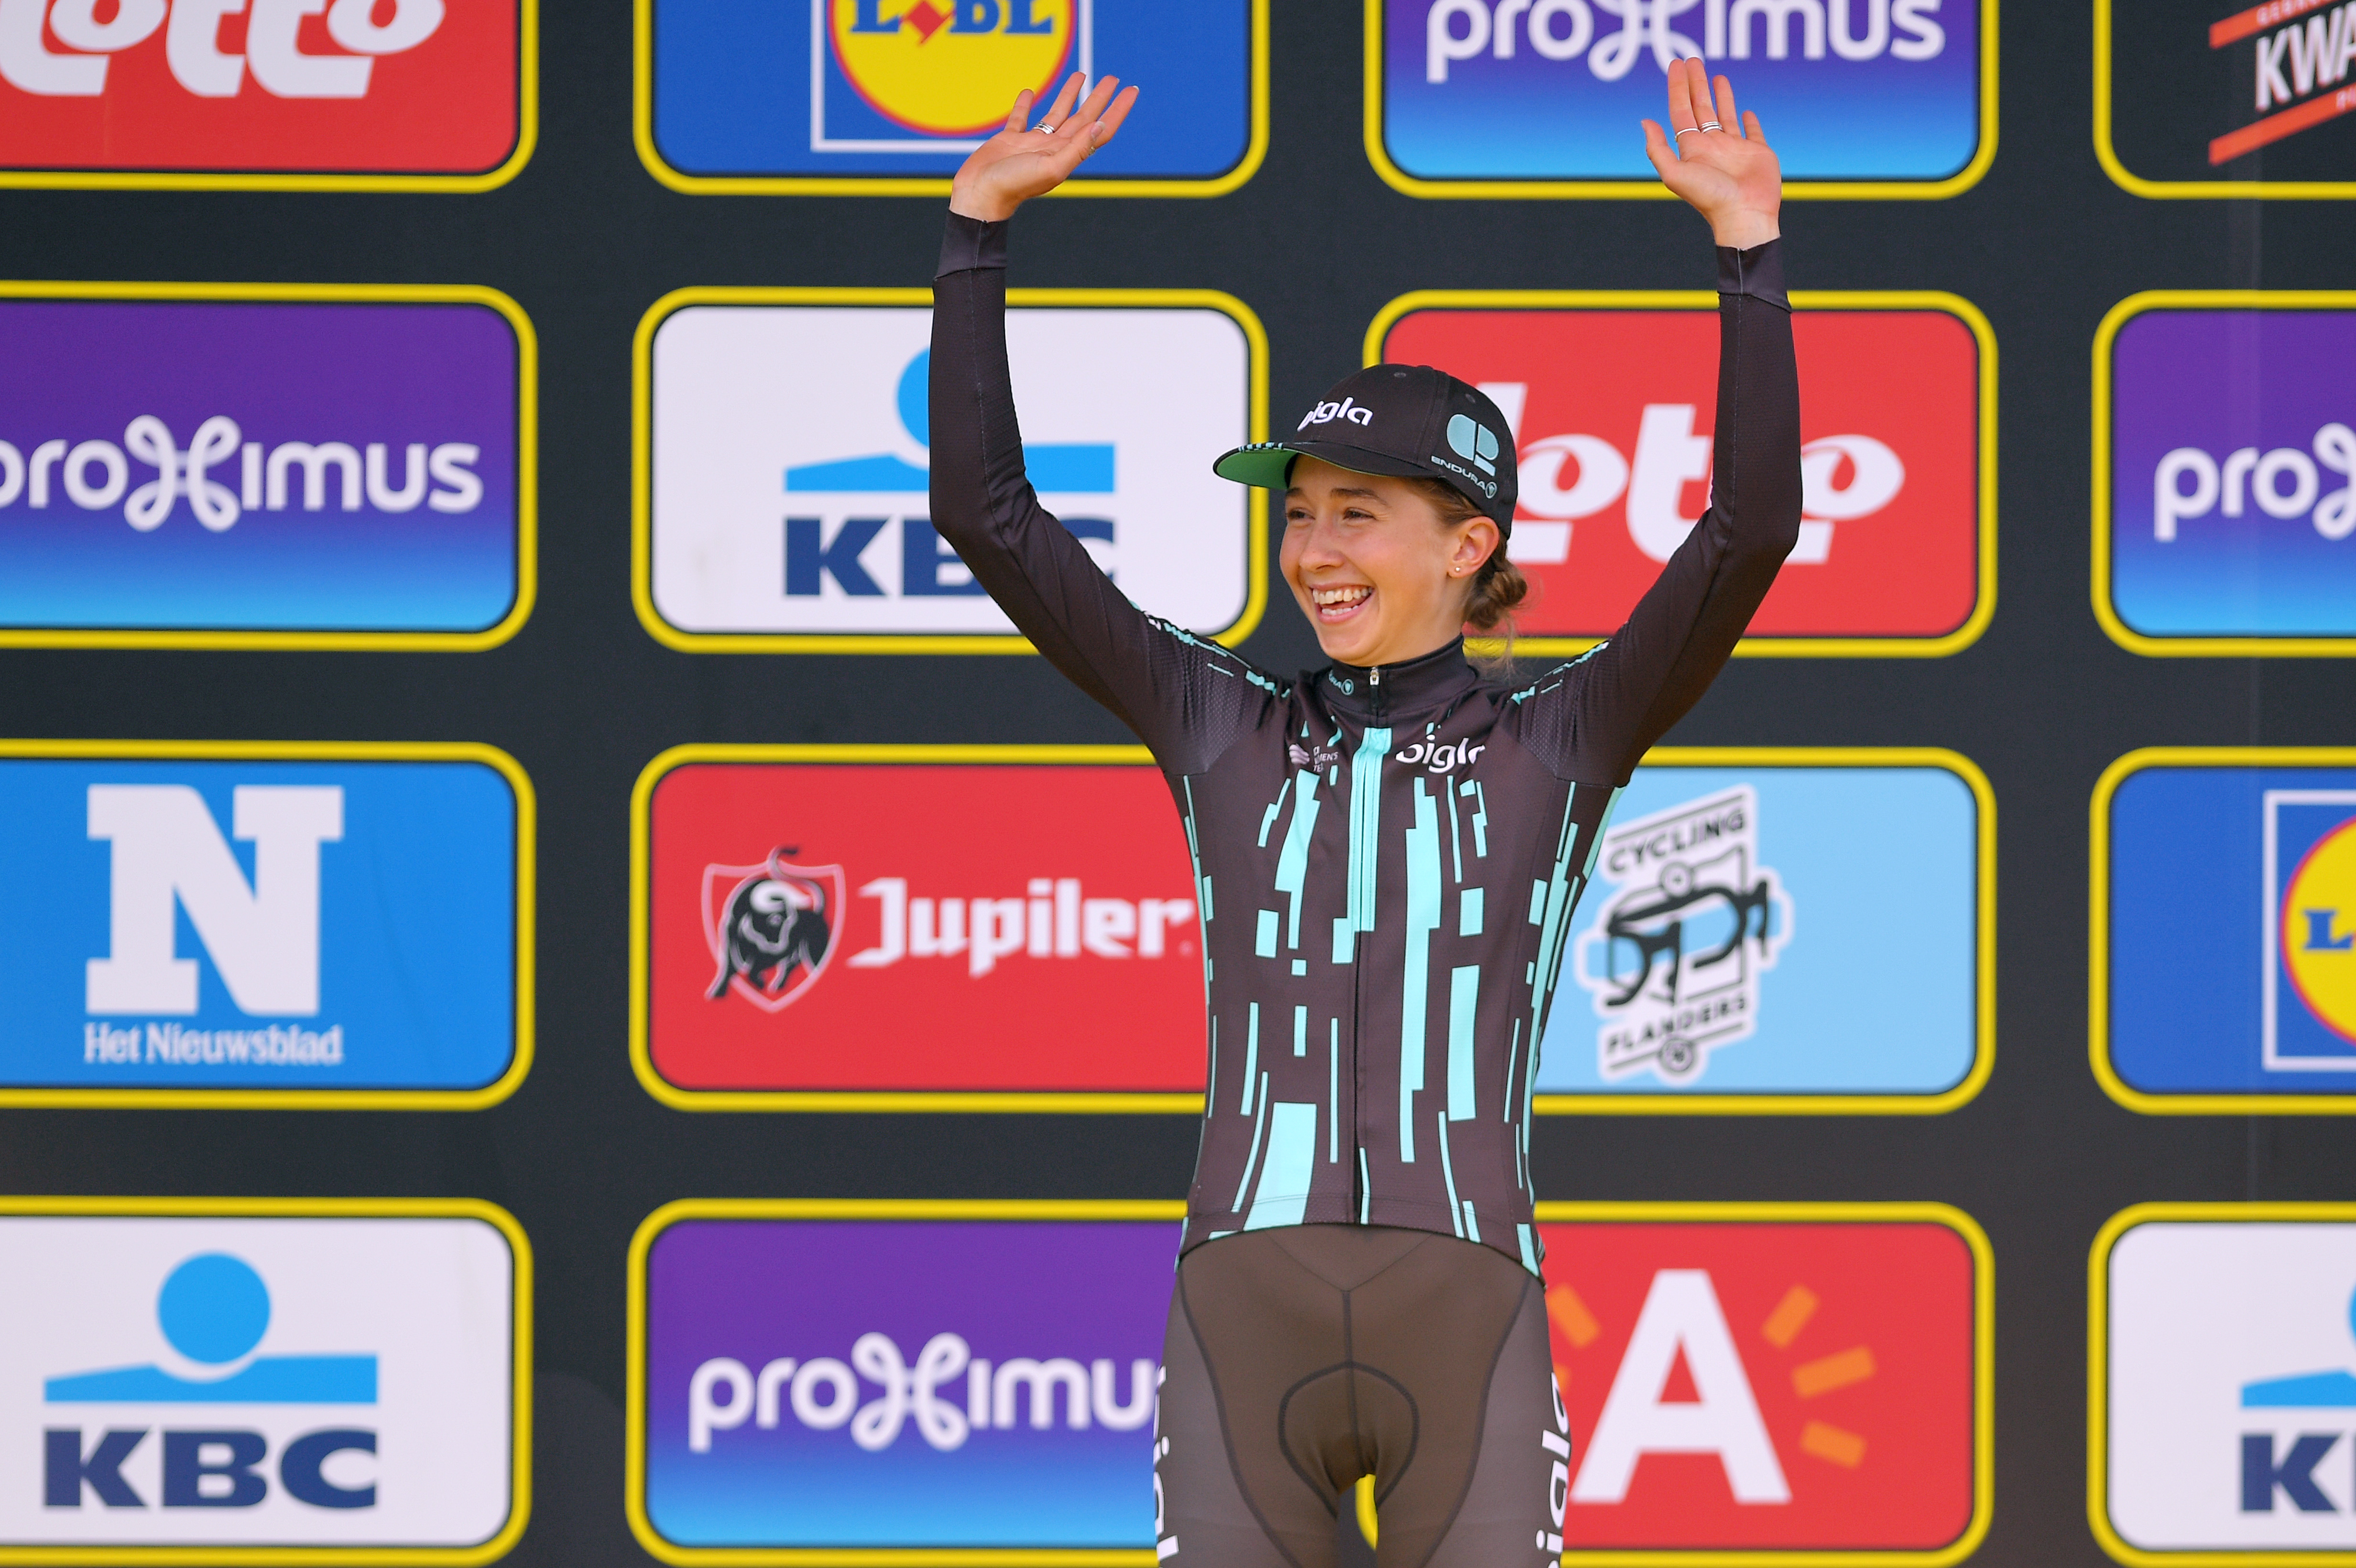 Cecilie Uttrup Ludwig gives hilarious post-race interview after finishing third in women's Tour of Flanders